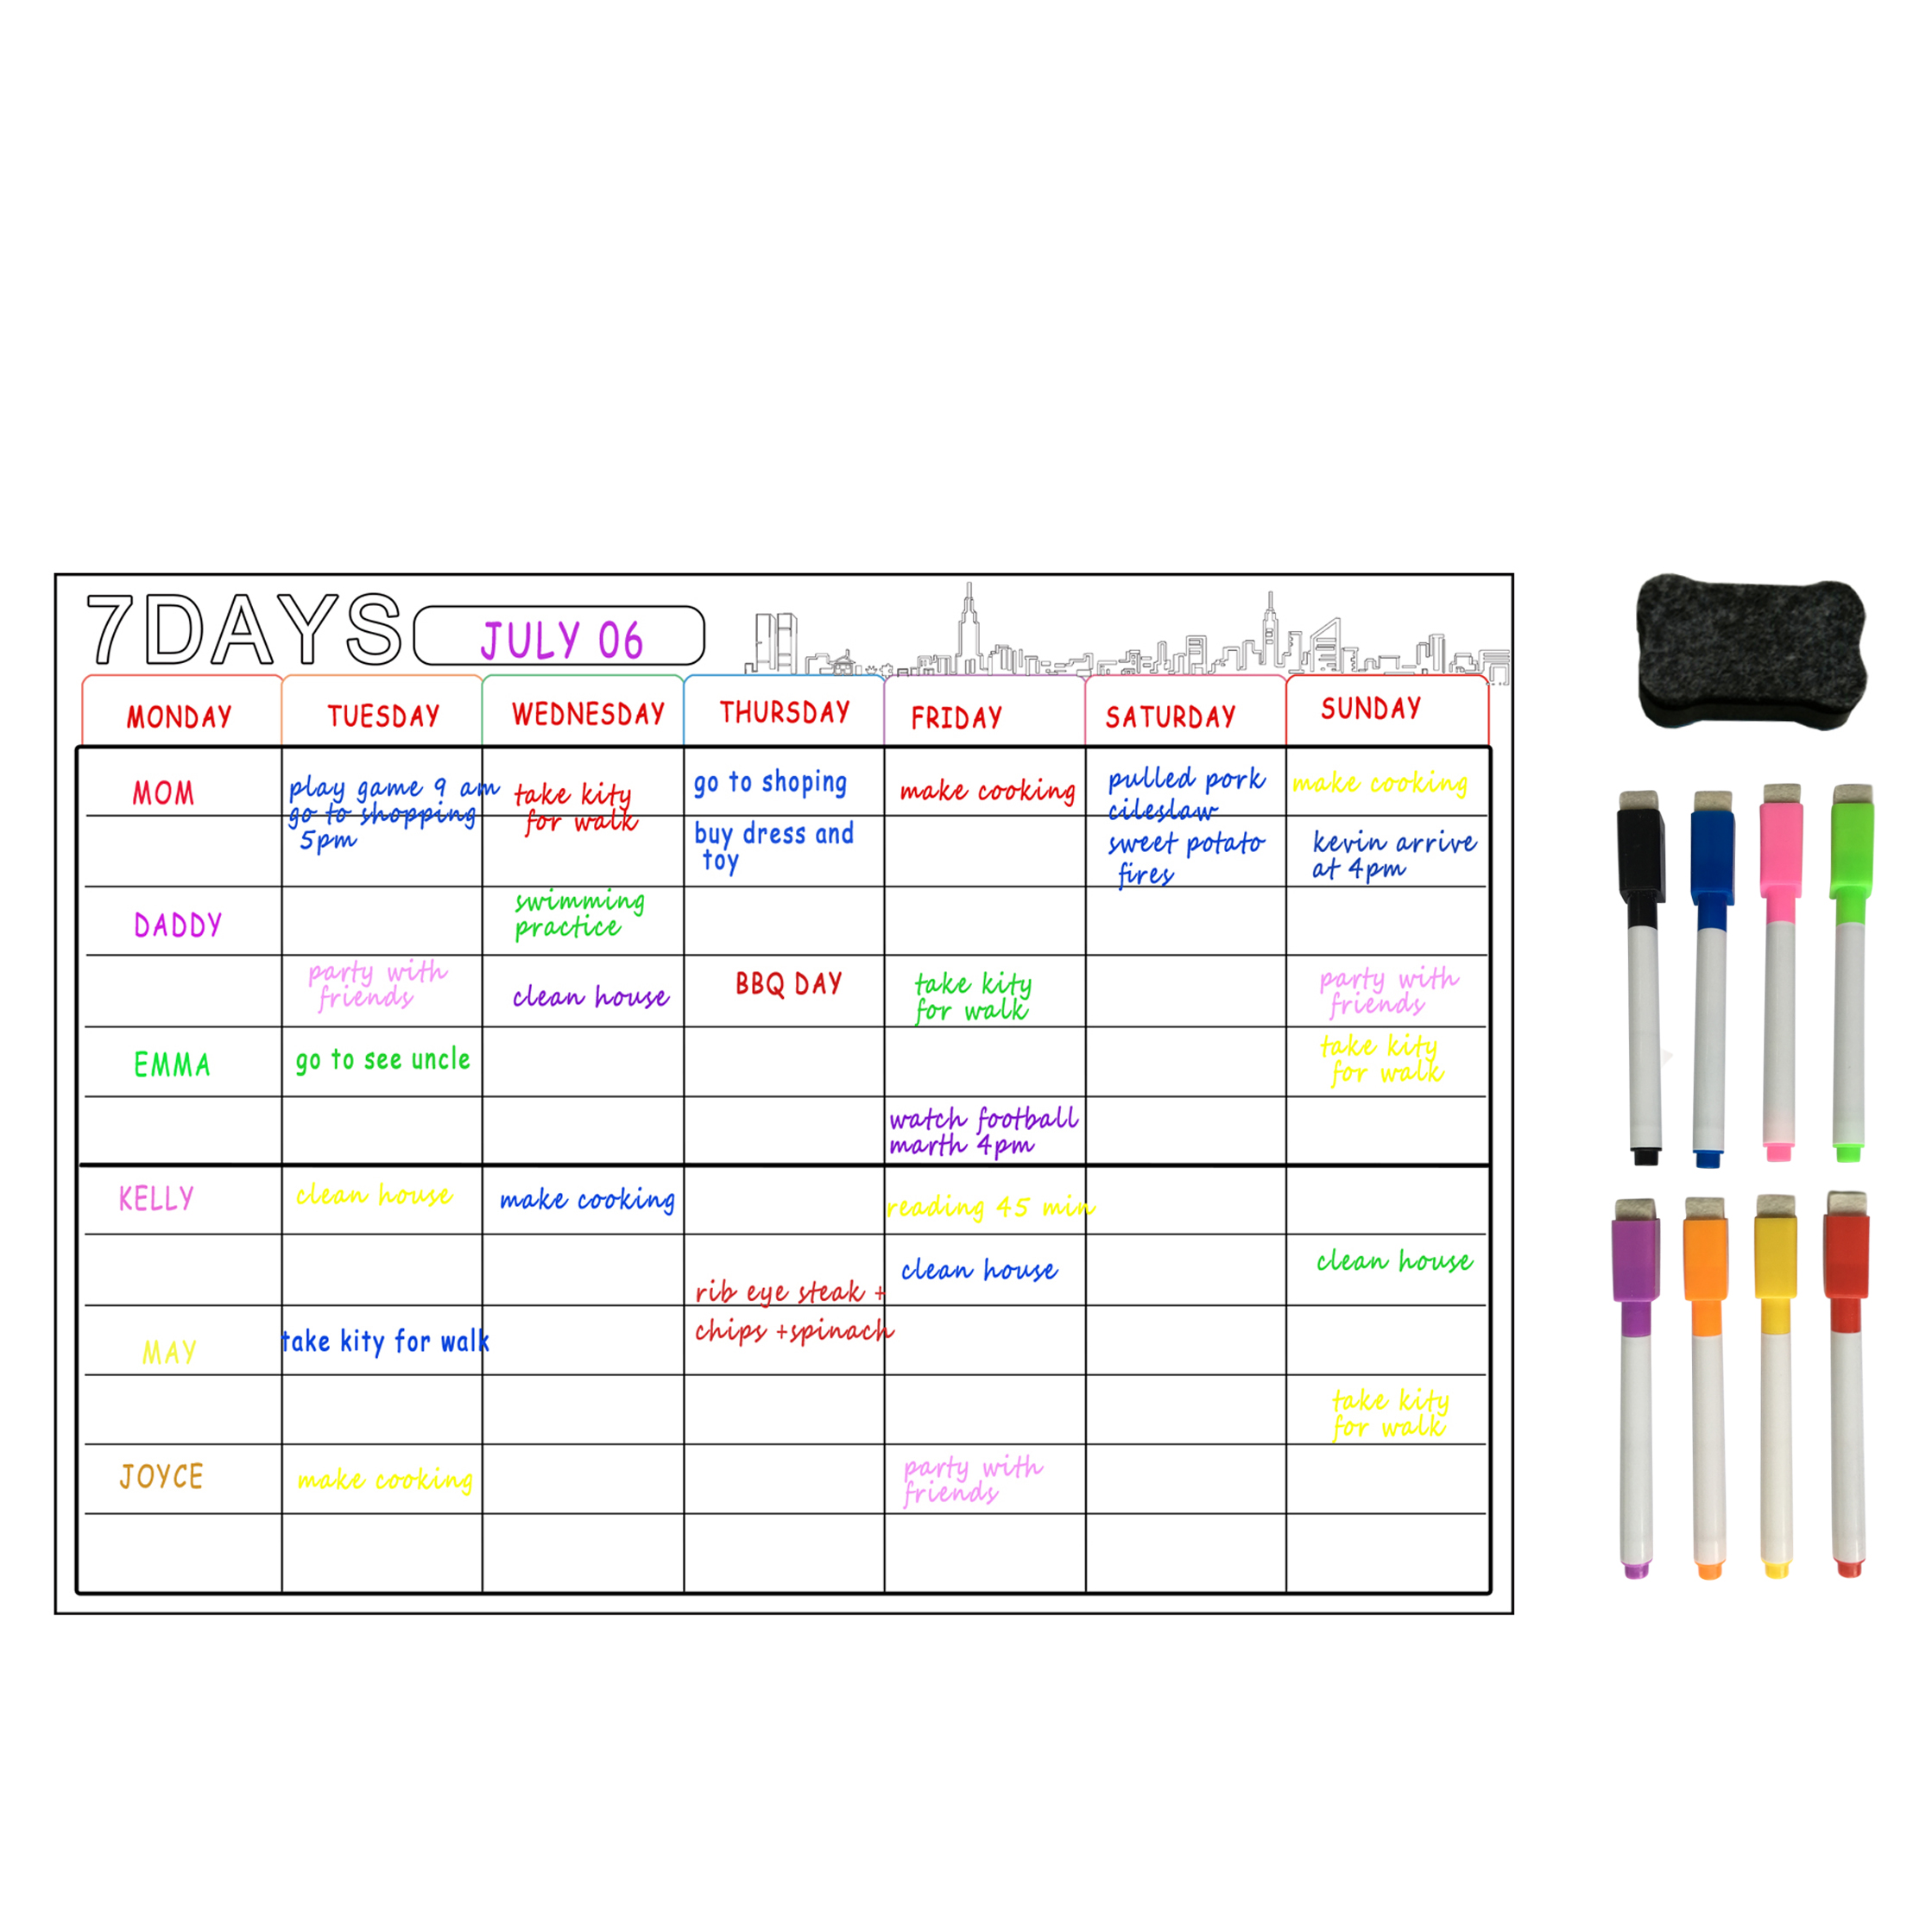 A3 Magnetic Whiteboard Dry Erase Calendar Set 16x12'' Whiteboard Weekly Planner For Refrigerator Fridge Kitchen Home